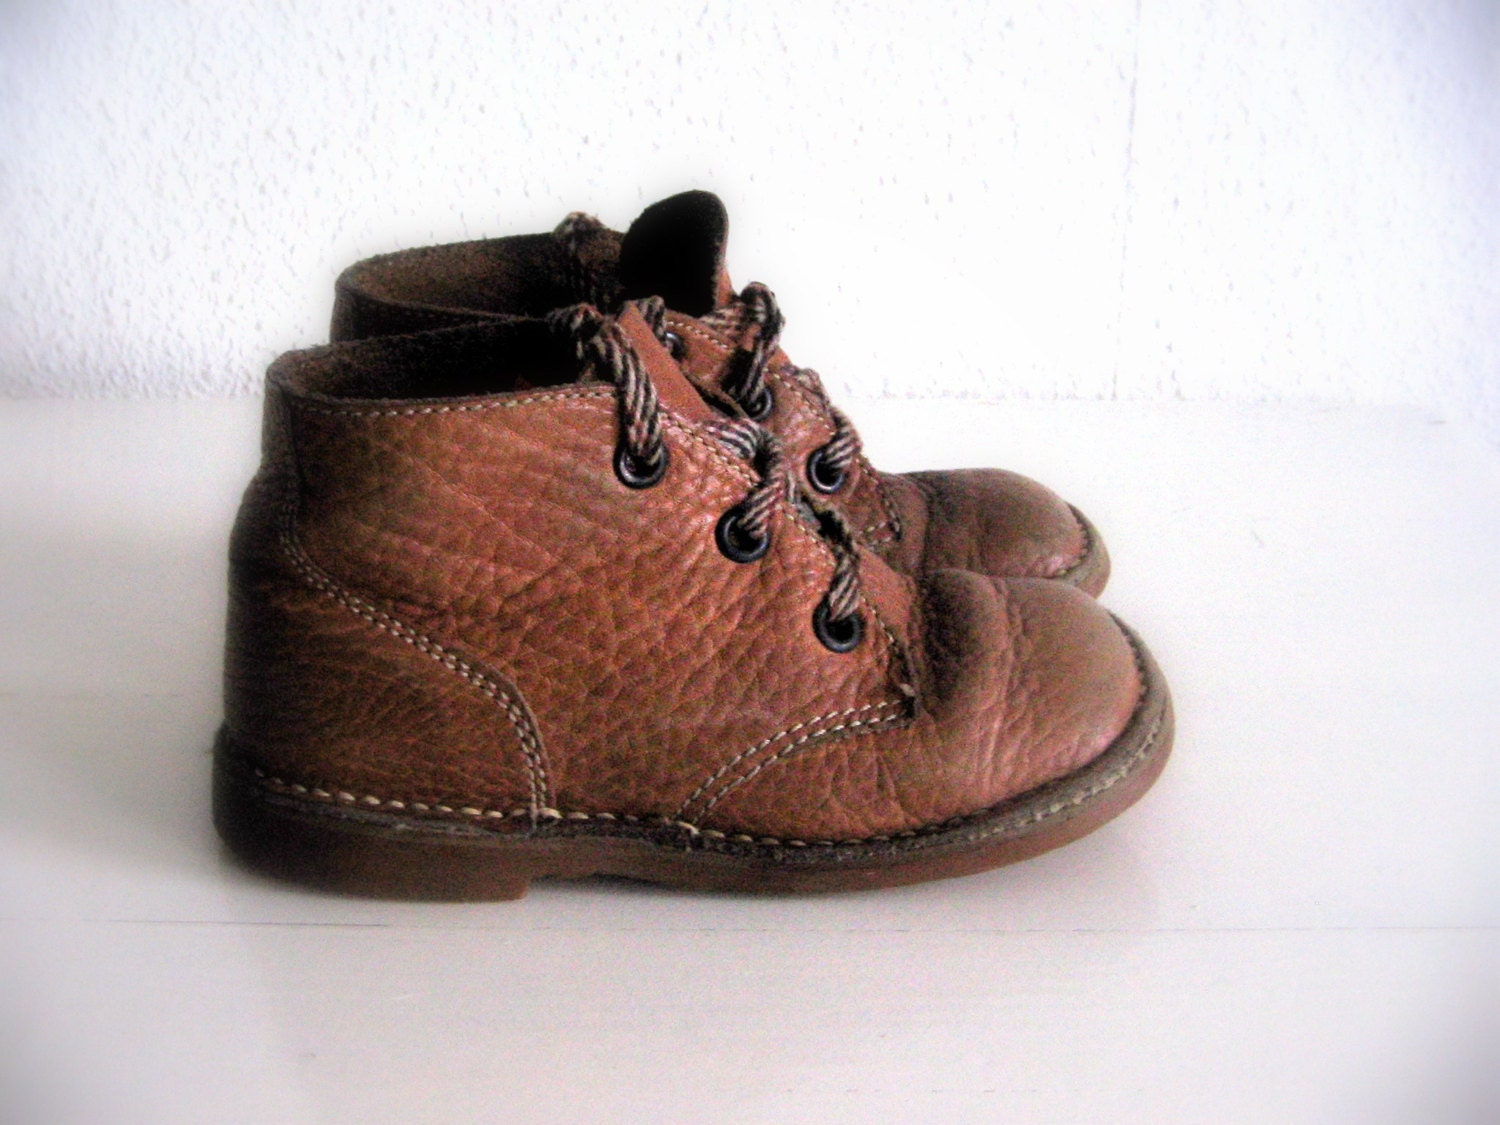 Vintage Toddler Leathers Boots . Lace-up Shoes .  Brown Leather . Kids Size 7.5